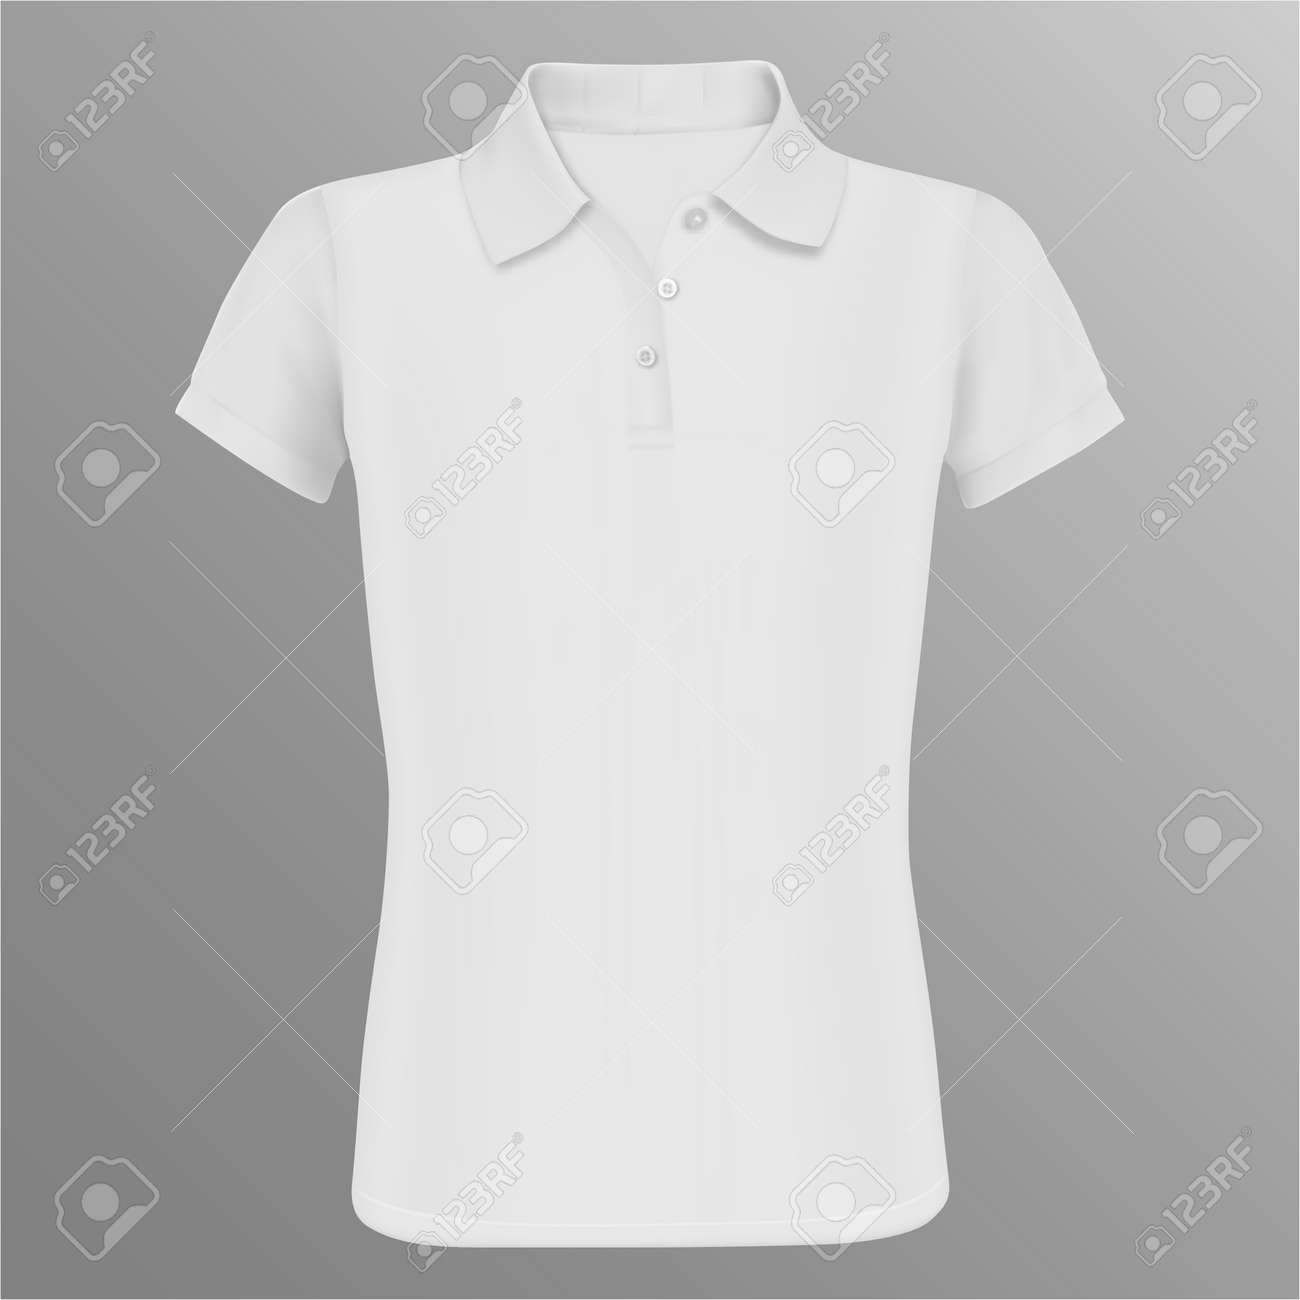 Polo Shirt Mockup White Vector Isolated Template Realistic